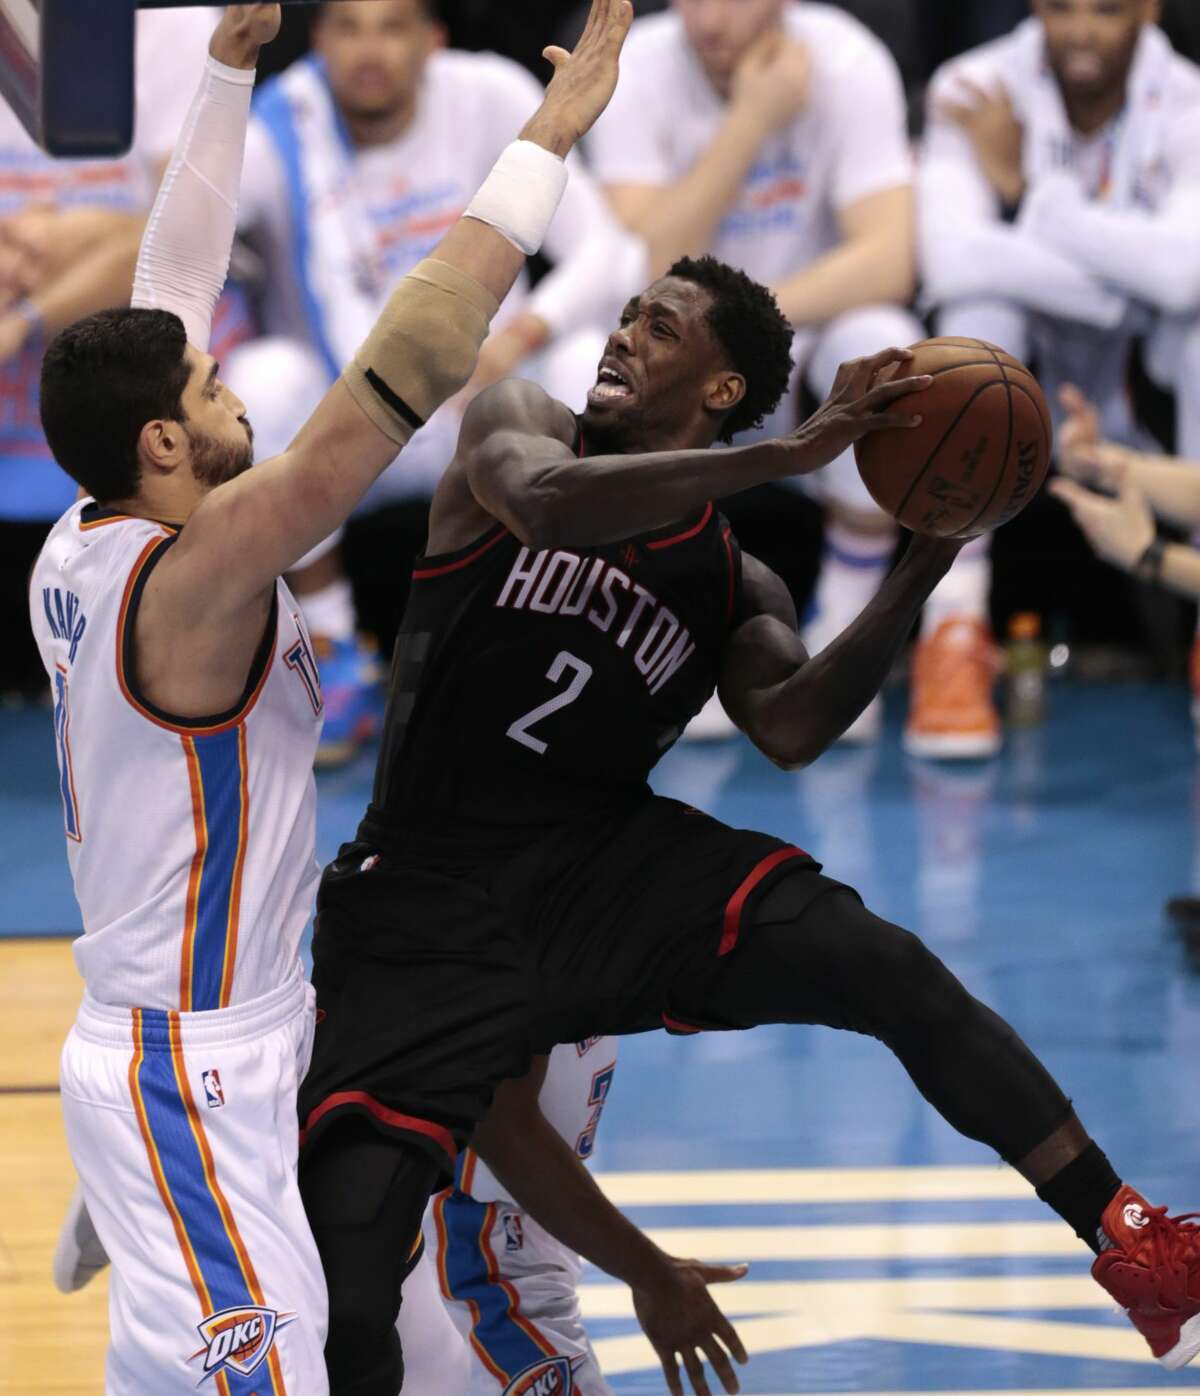 Houston Rockets guard Patrick Beverley (2) is knockdd out of bounds by Oklahoma City Thunder center Enes Kanter (11) during the fourth quarter of Game 3 of the NBA Western Conference first-round playoff series at Chesapeake Energy Arena on Friday, April 21, 2017, in Oklahoma City. The Thunder beat the Rockets 115-113. The Rockets lead the best-of-seven series 2-1. ( Brett Coomer / Houston Chronicle )